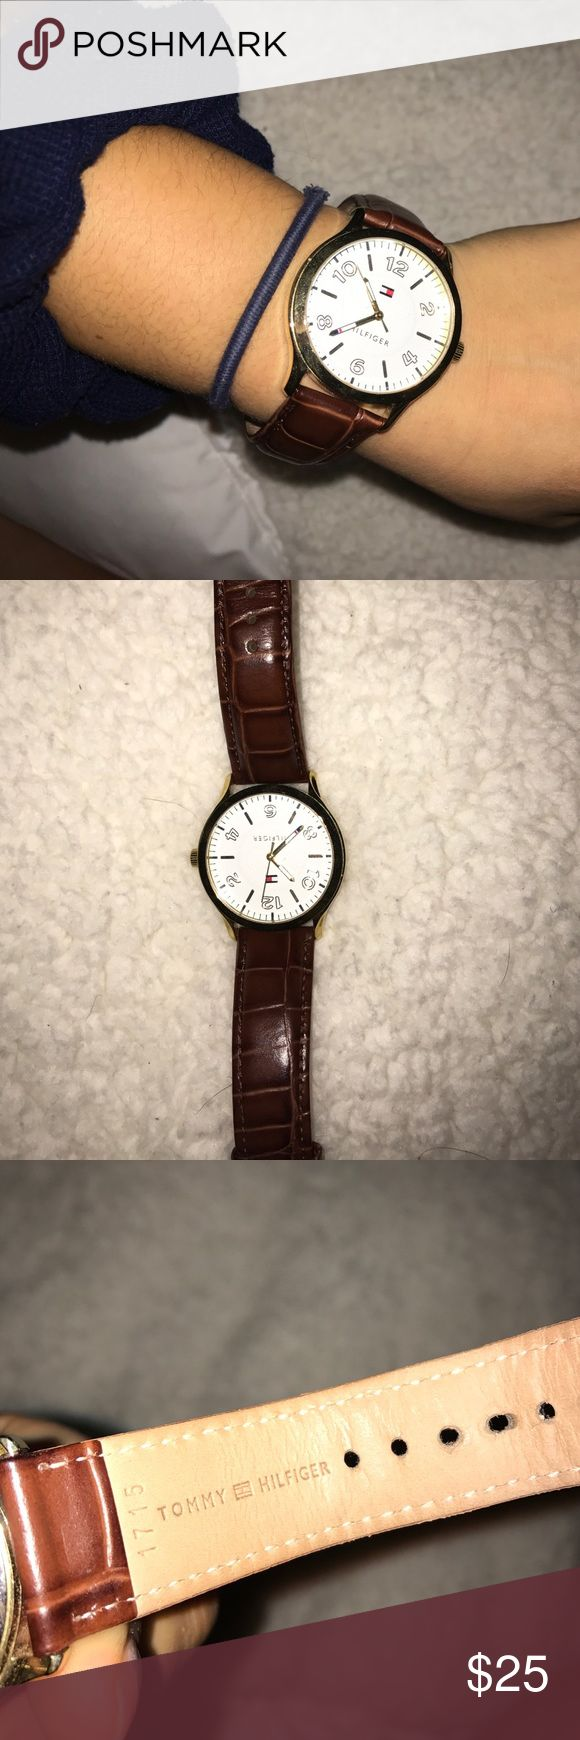 Tommy Hilfiger watch !!!! Beautiful tommy watch w brown leather band and gold detailing! Great to class up any look. 💖make offers 💖 Tommy Hilfiger Accessories Watches